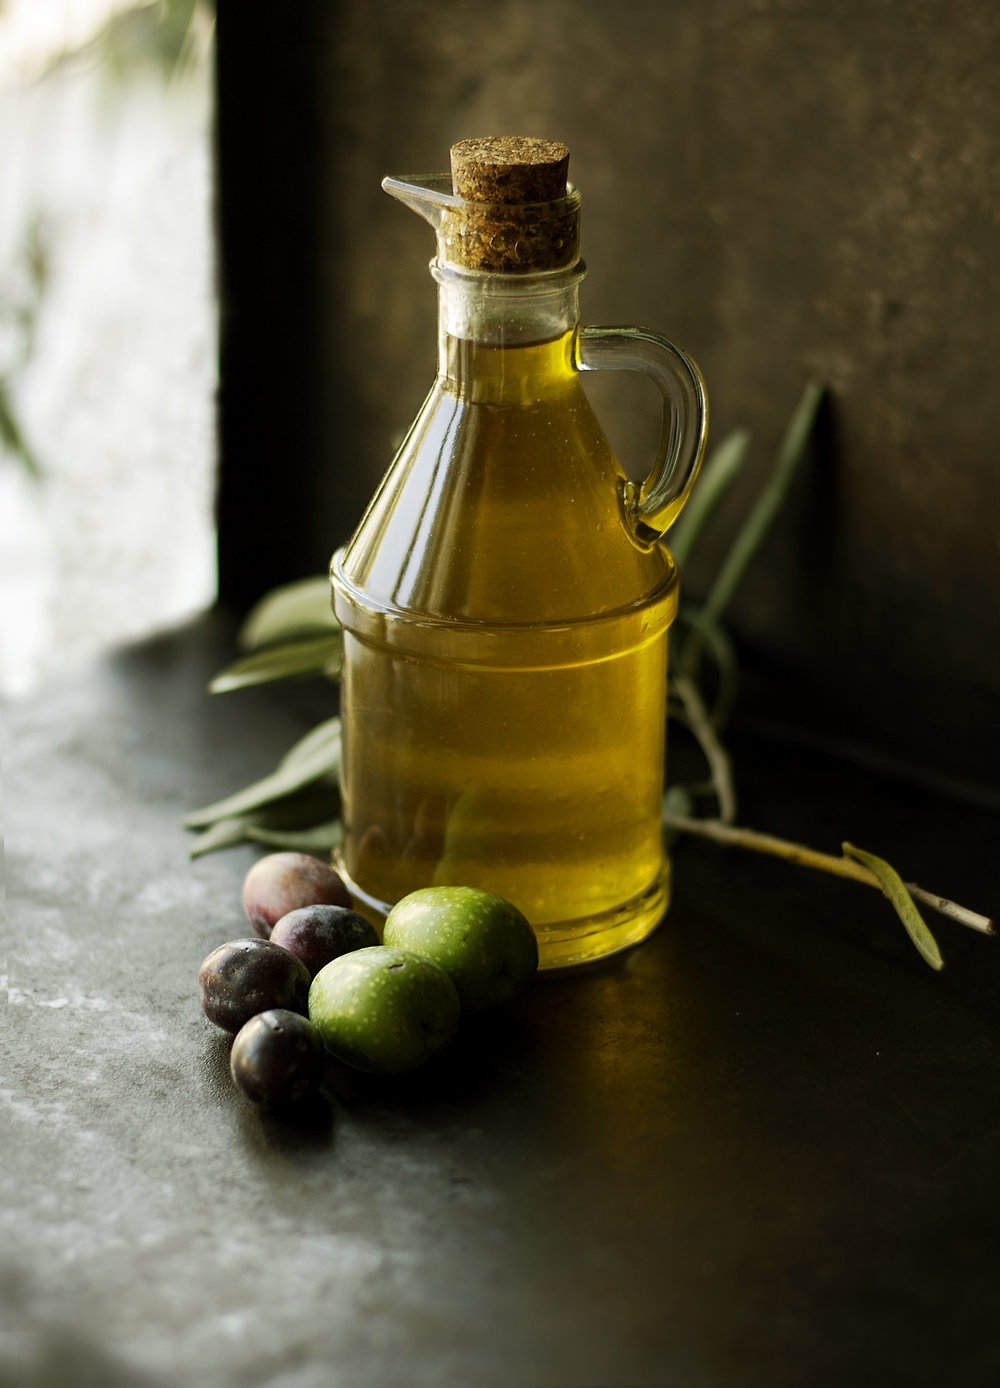 Oils and Fats - Olive oil and coconut oil are must-haves for me at home and out on the trail. Olive oil is high in healthy fats, antioxidants, and anti-inflamatory properties. I carry my olive oil in a soft flask and have had no problems with leaking. I make sure to add at least a tablespoon to every meal on trail.Coconut oil is also high in healthy fats and has many beneficial topical uses such as wound healing, moisturizing for hair and skin, and protects from harmful UV rays.